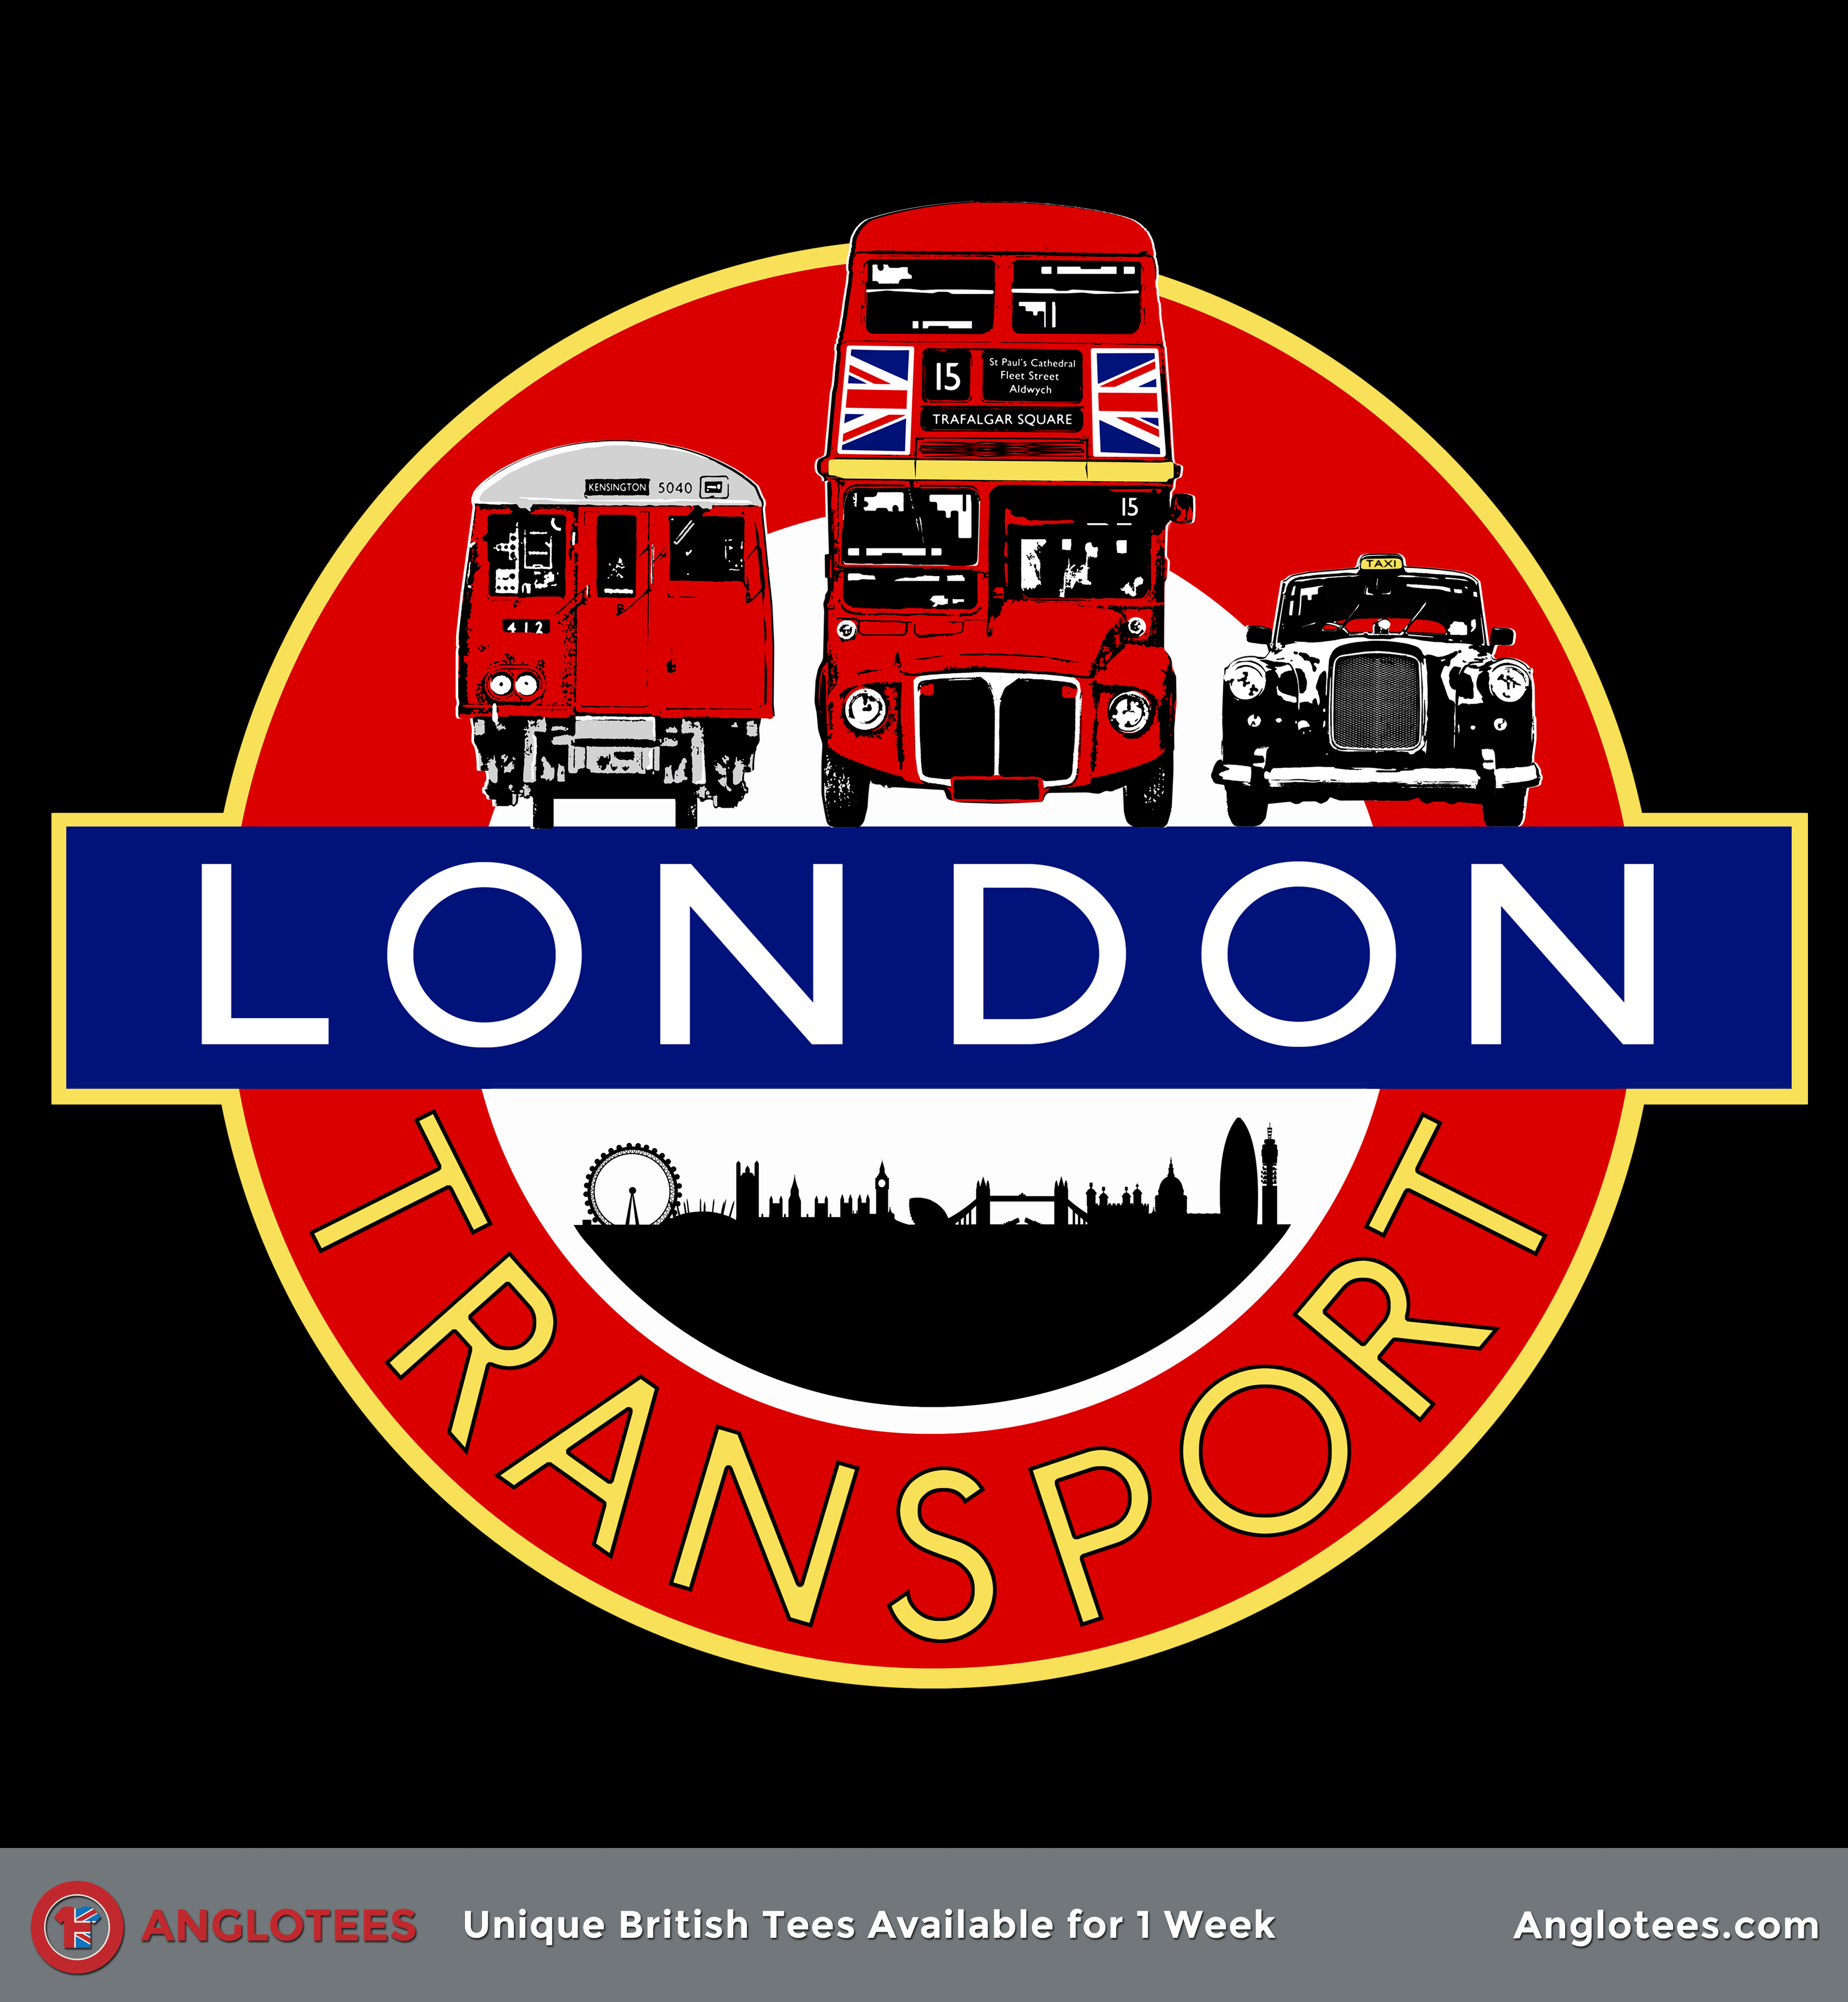 London Transport - Our Tribute to London